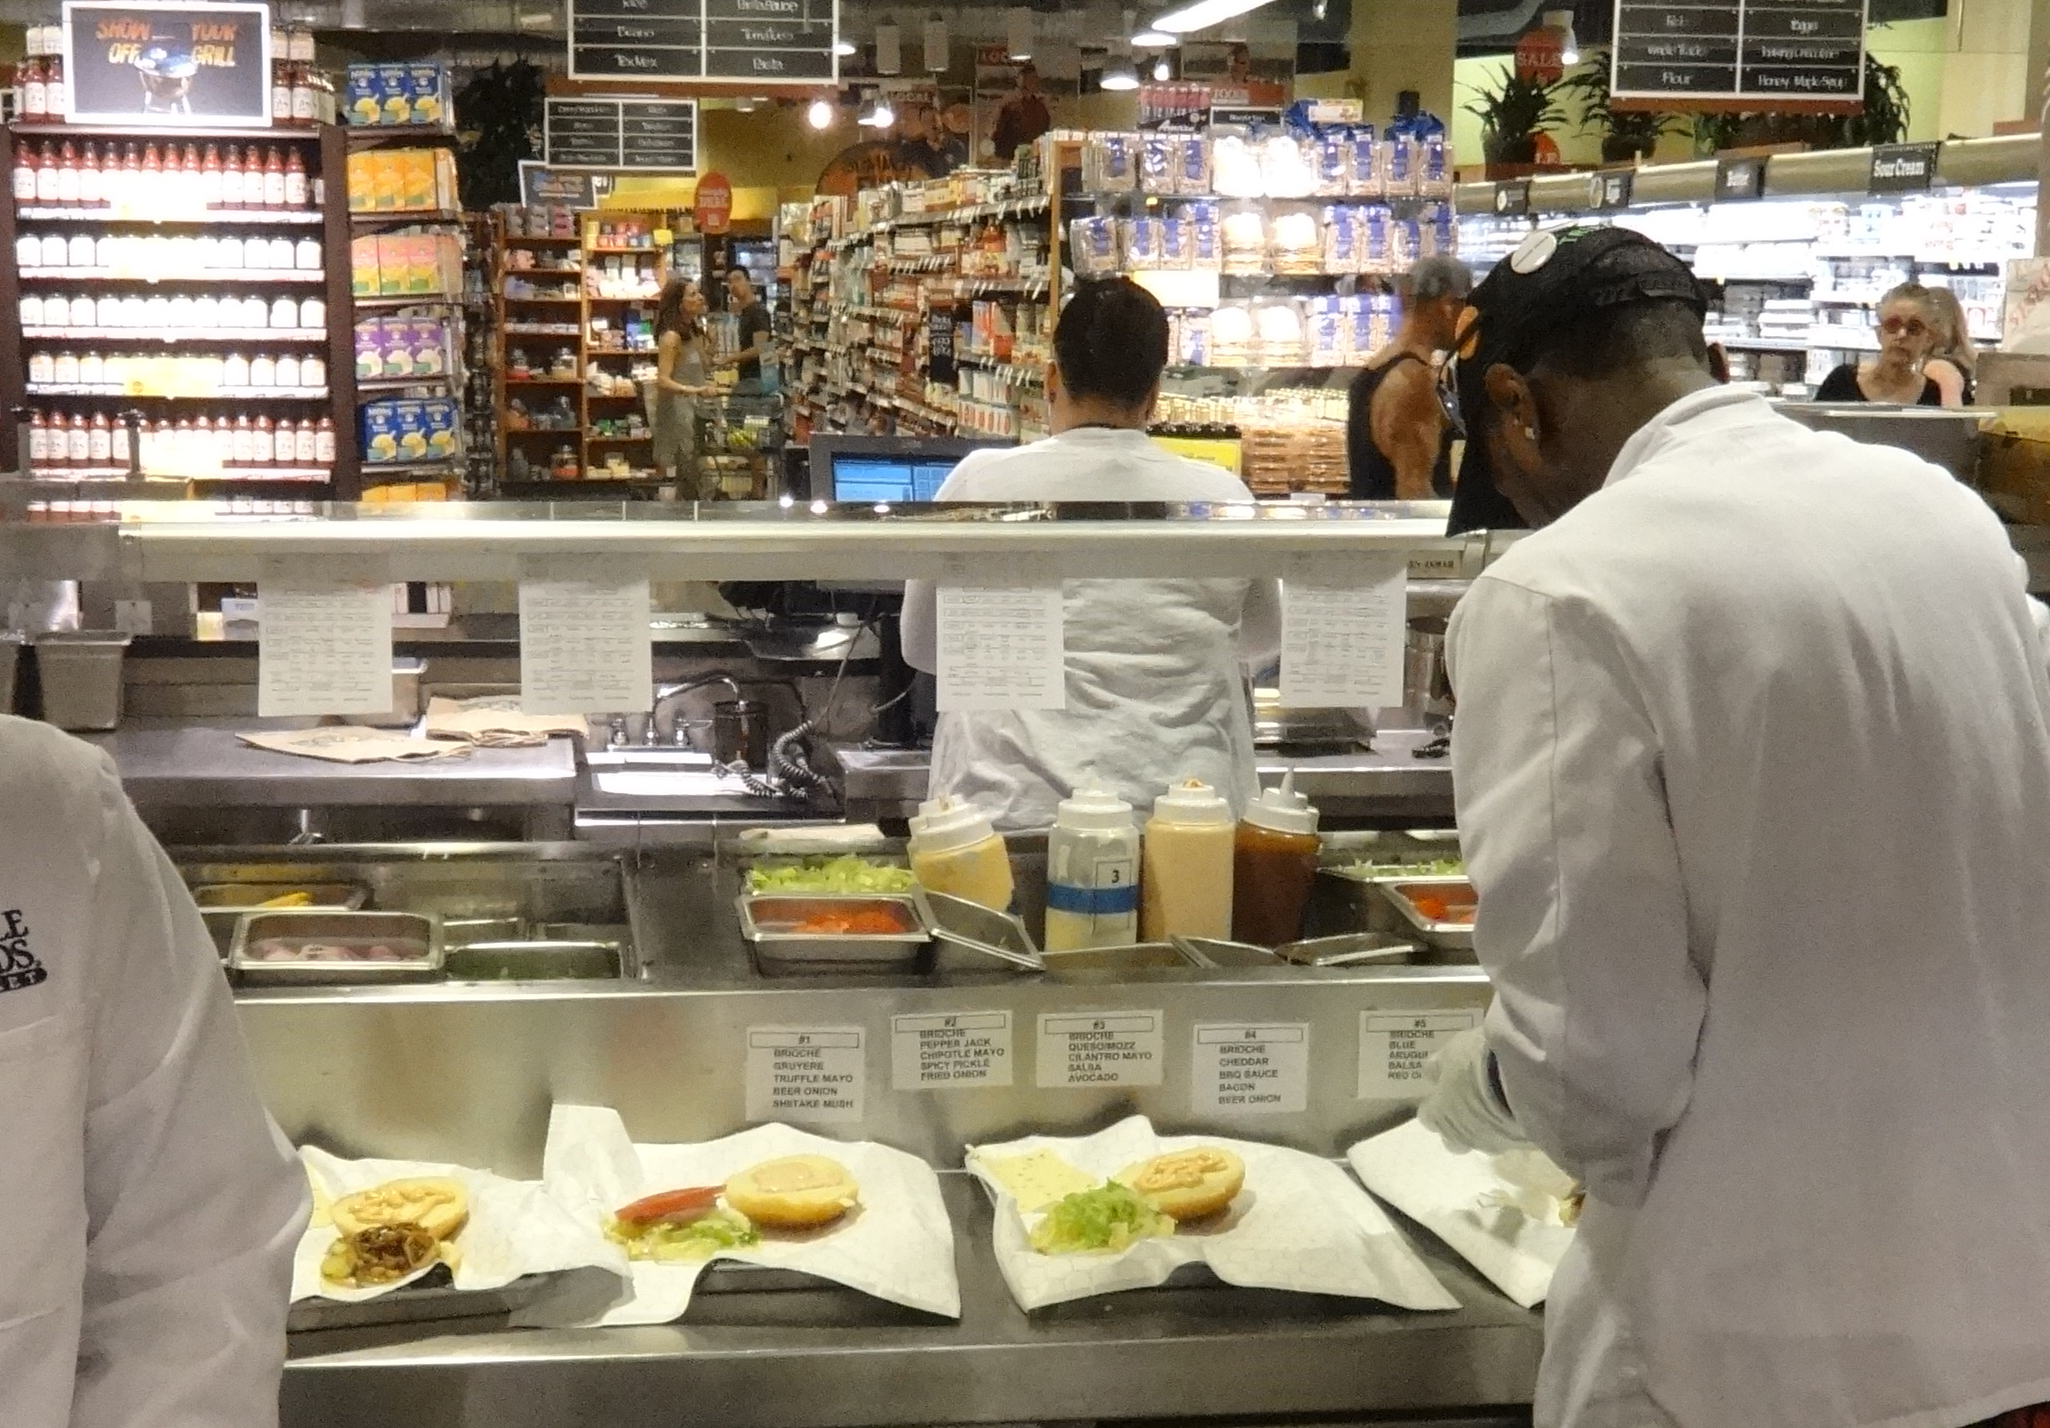 Whole Foods hamburgers being made